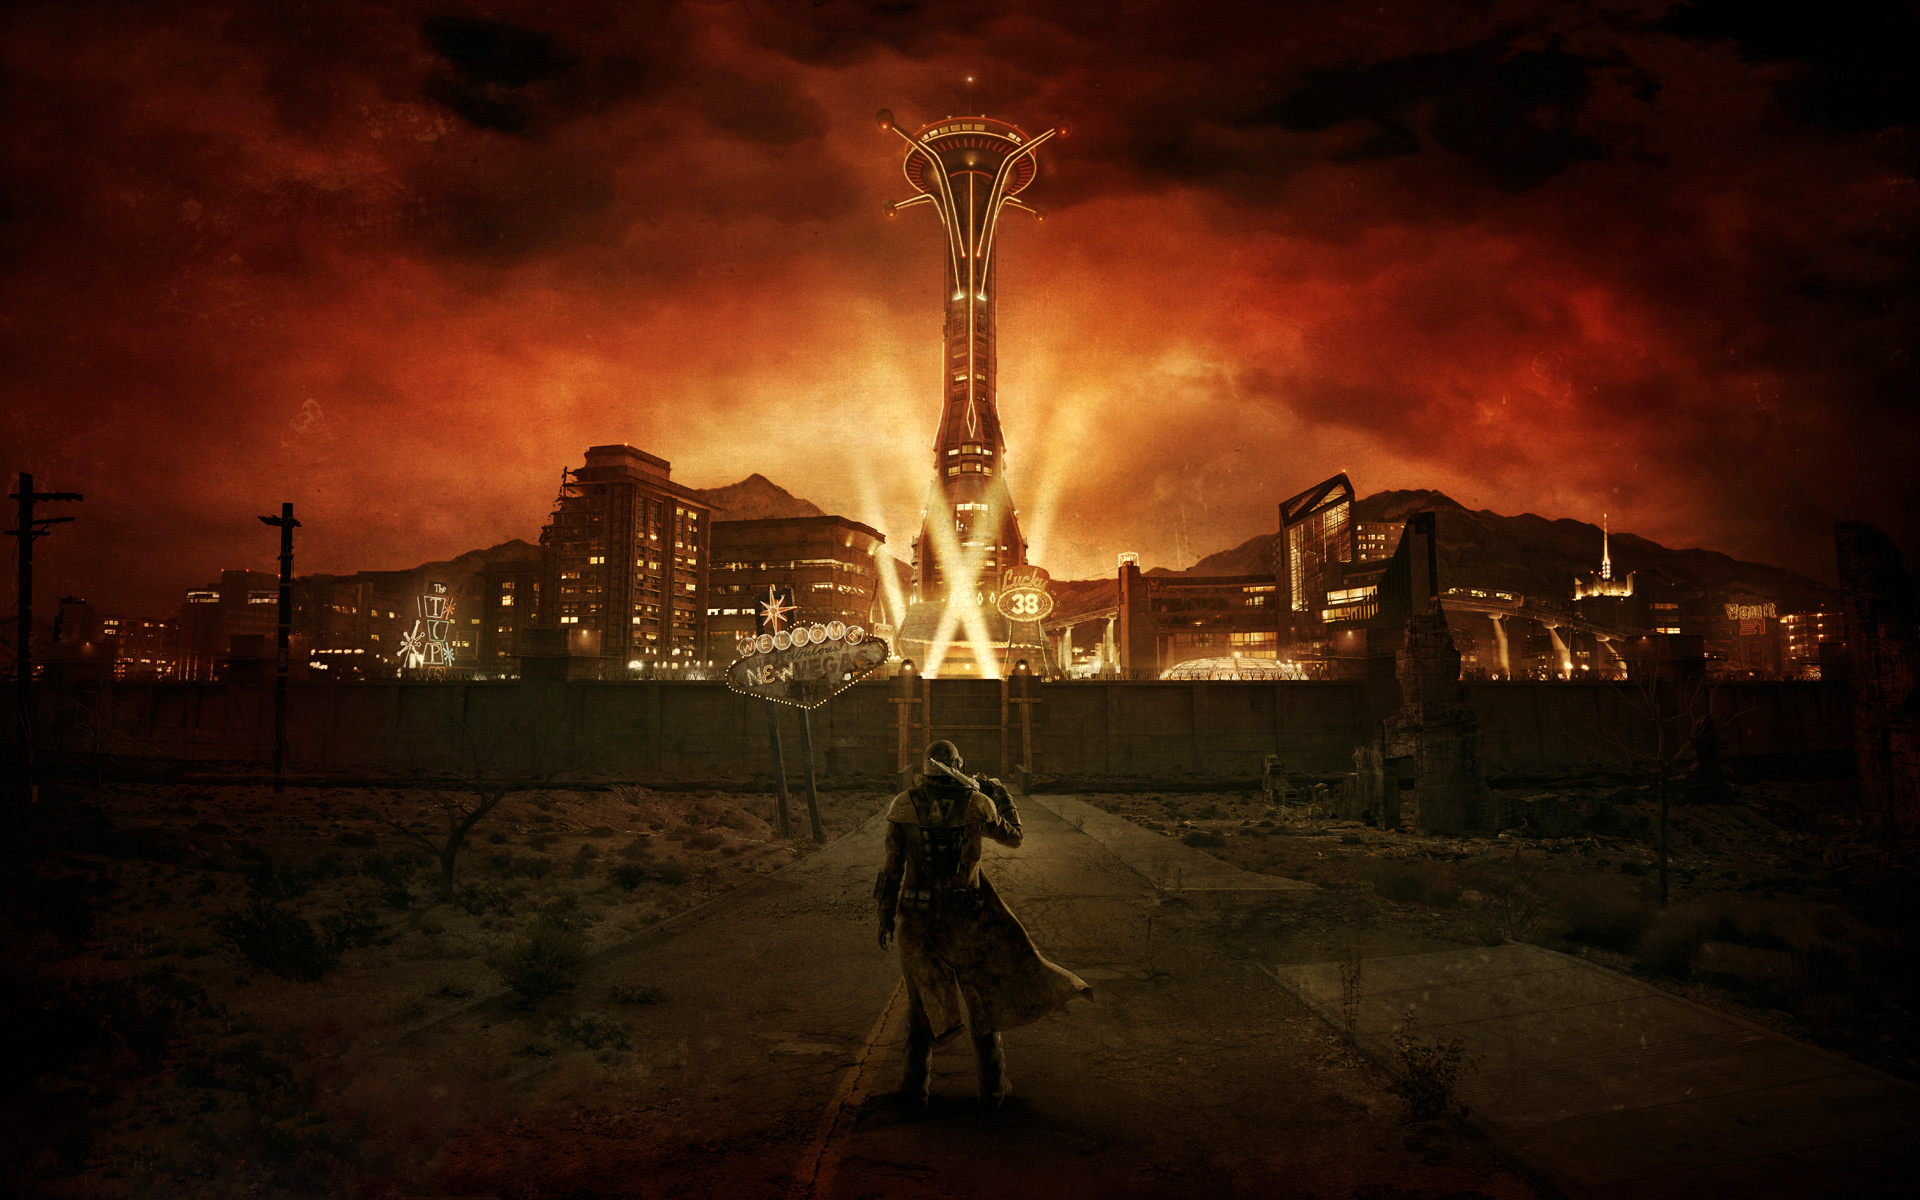 Relive Fallout: New Vegas As A YouTube Choose Your Own Adventure Game Ranger at New Vegas entrance